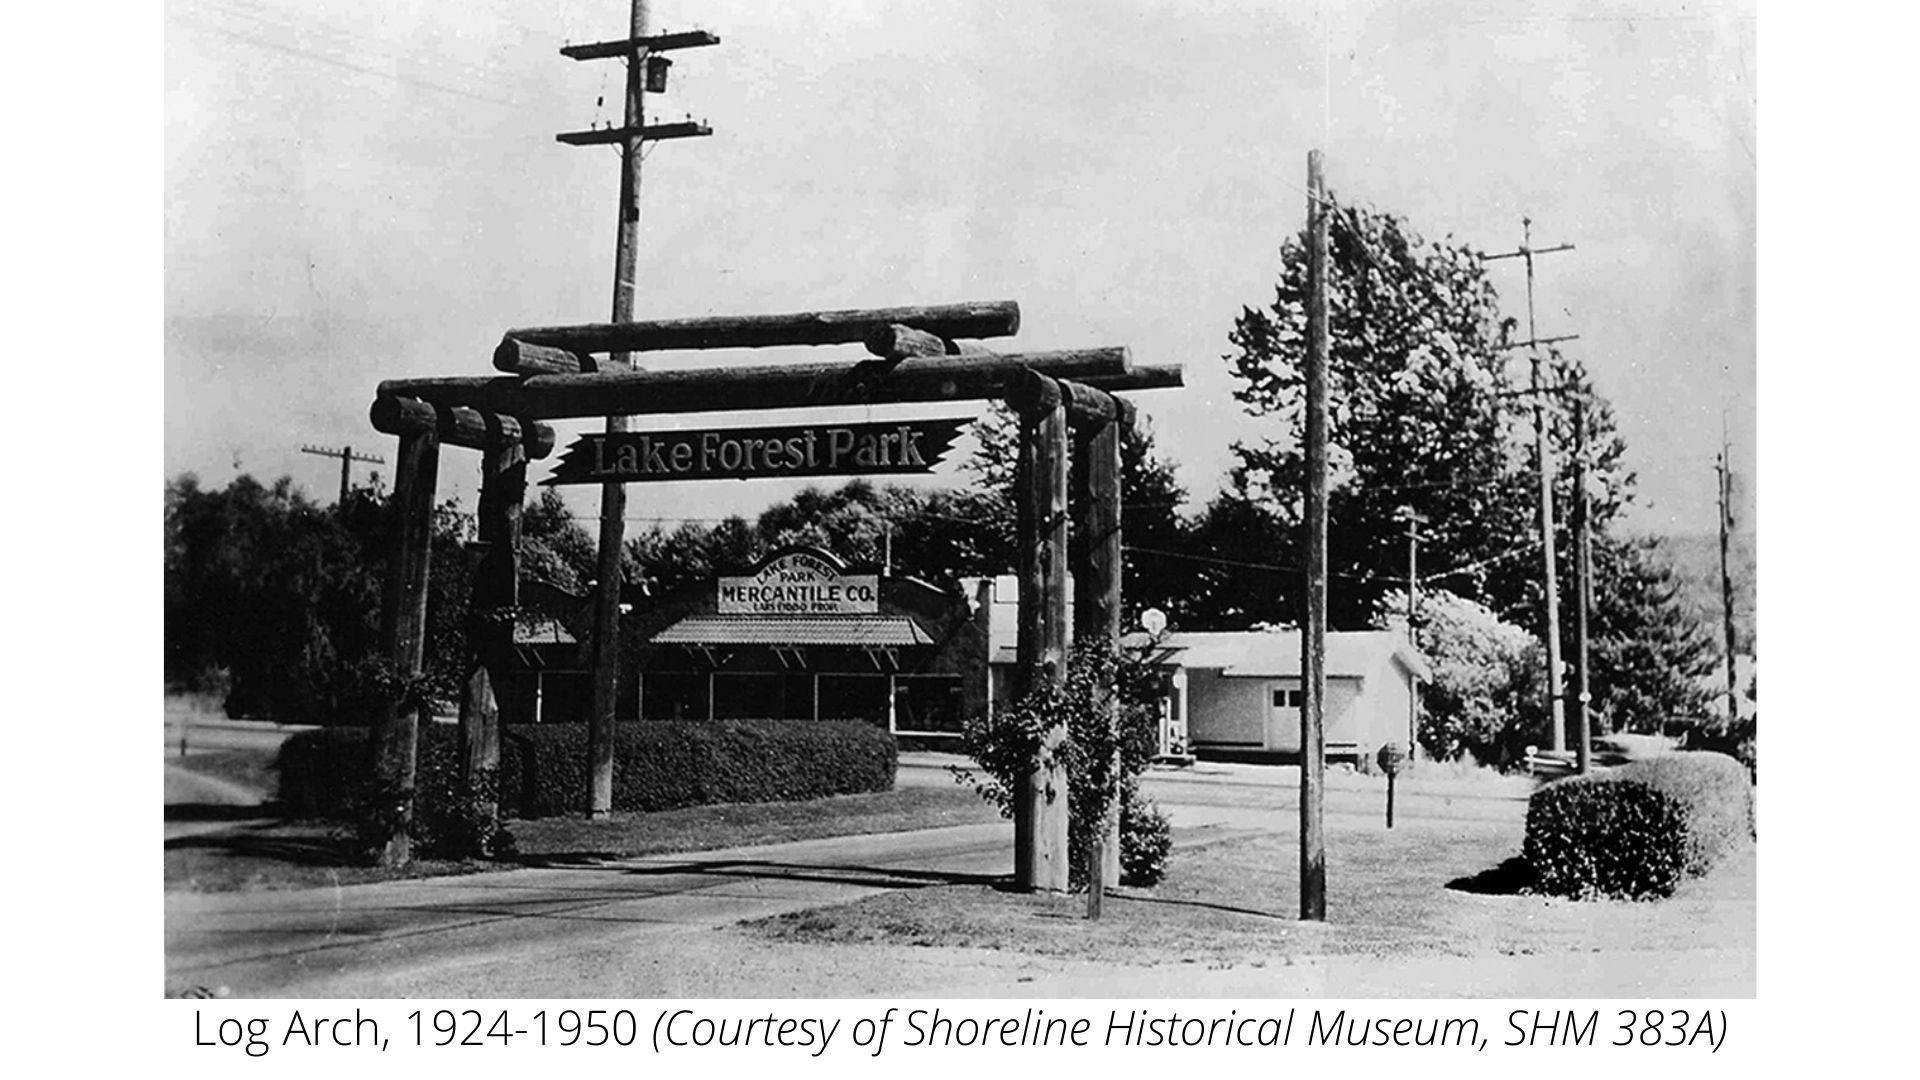 Lake Forest Park Log Arch, 1924 (Shoreline Historical Museum)